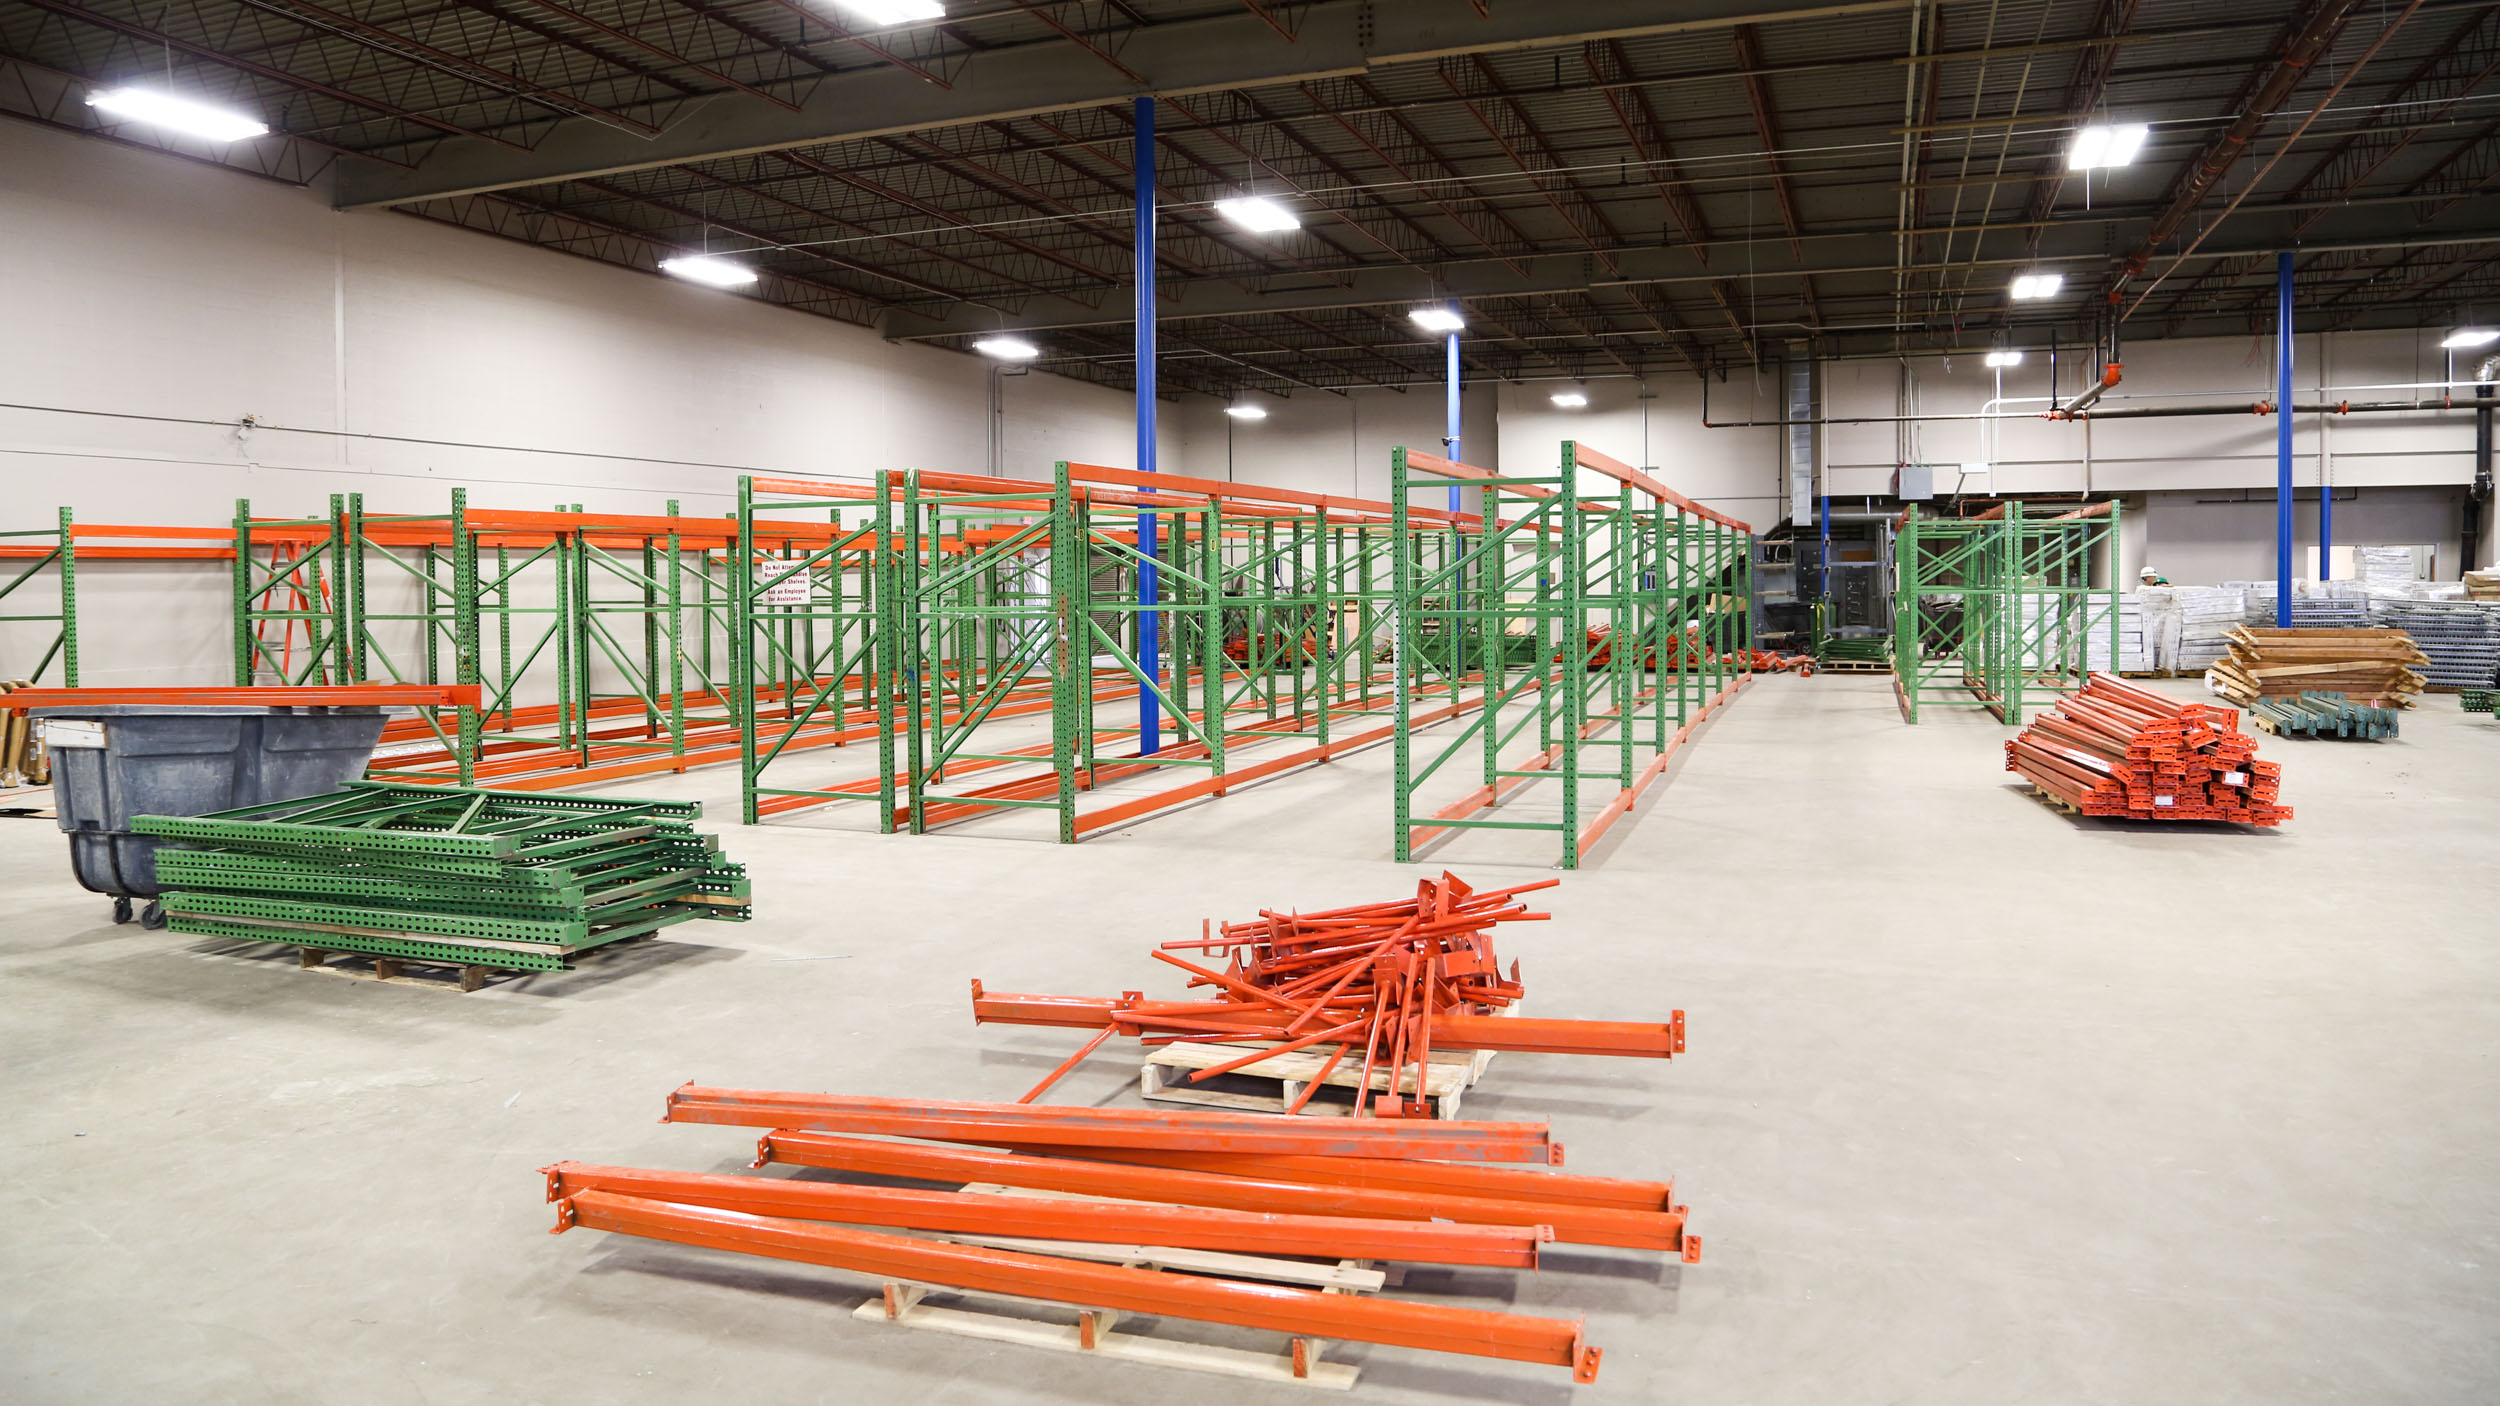 First Look: Habitat for Humanity ReStore Opening May 1st